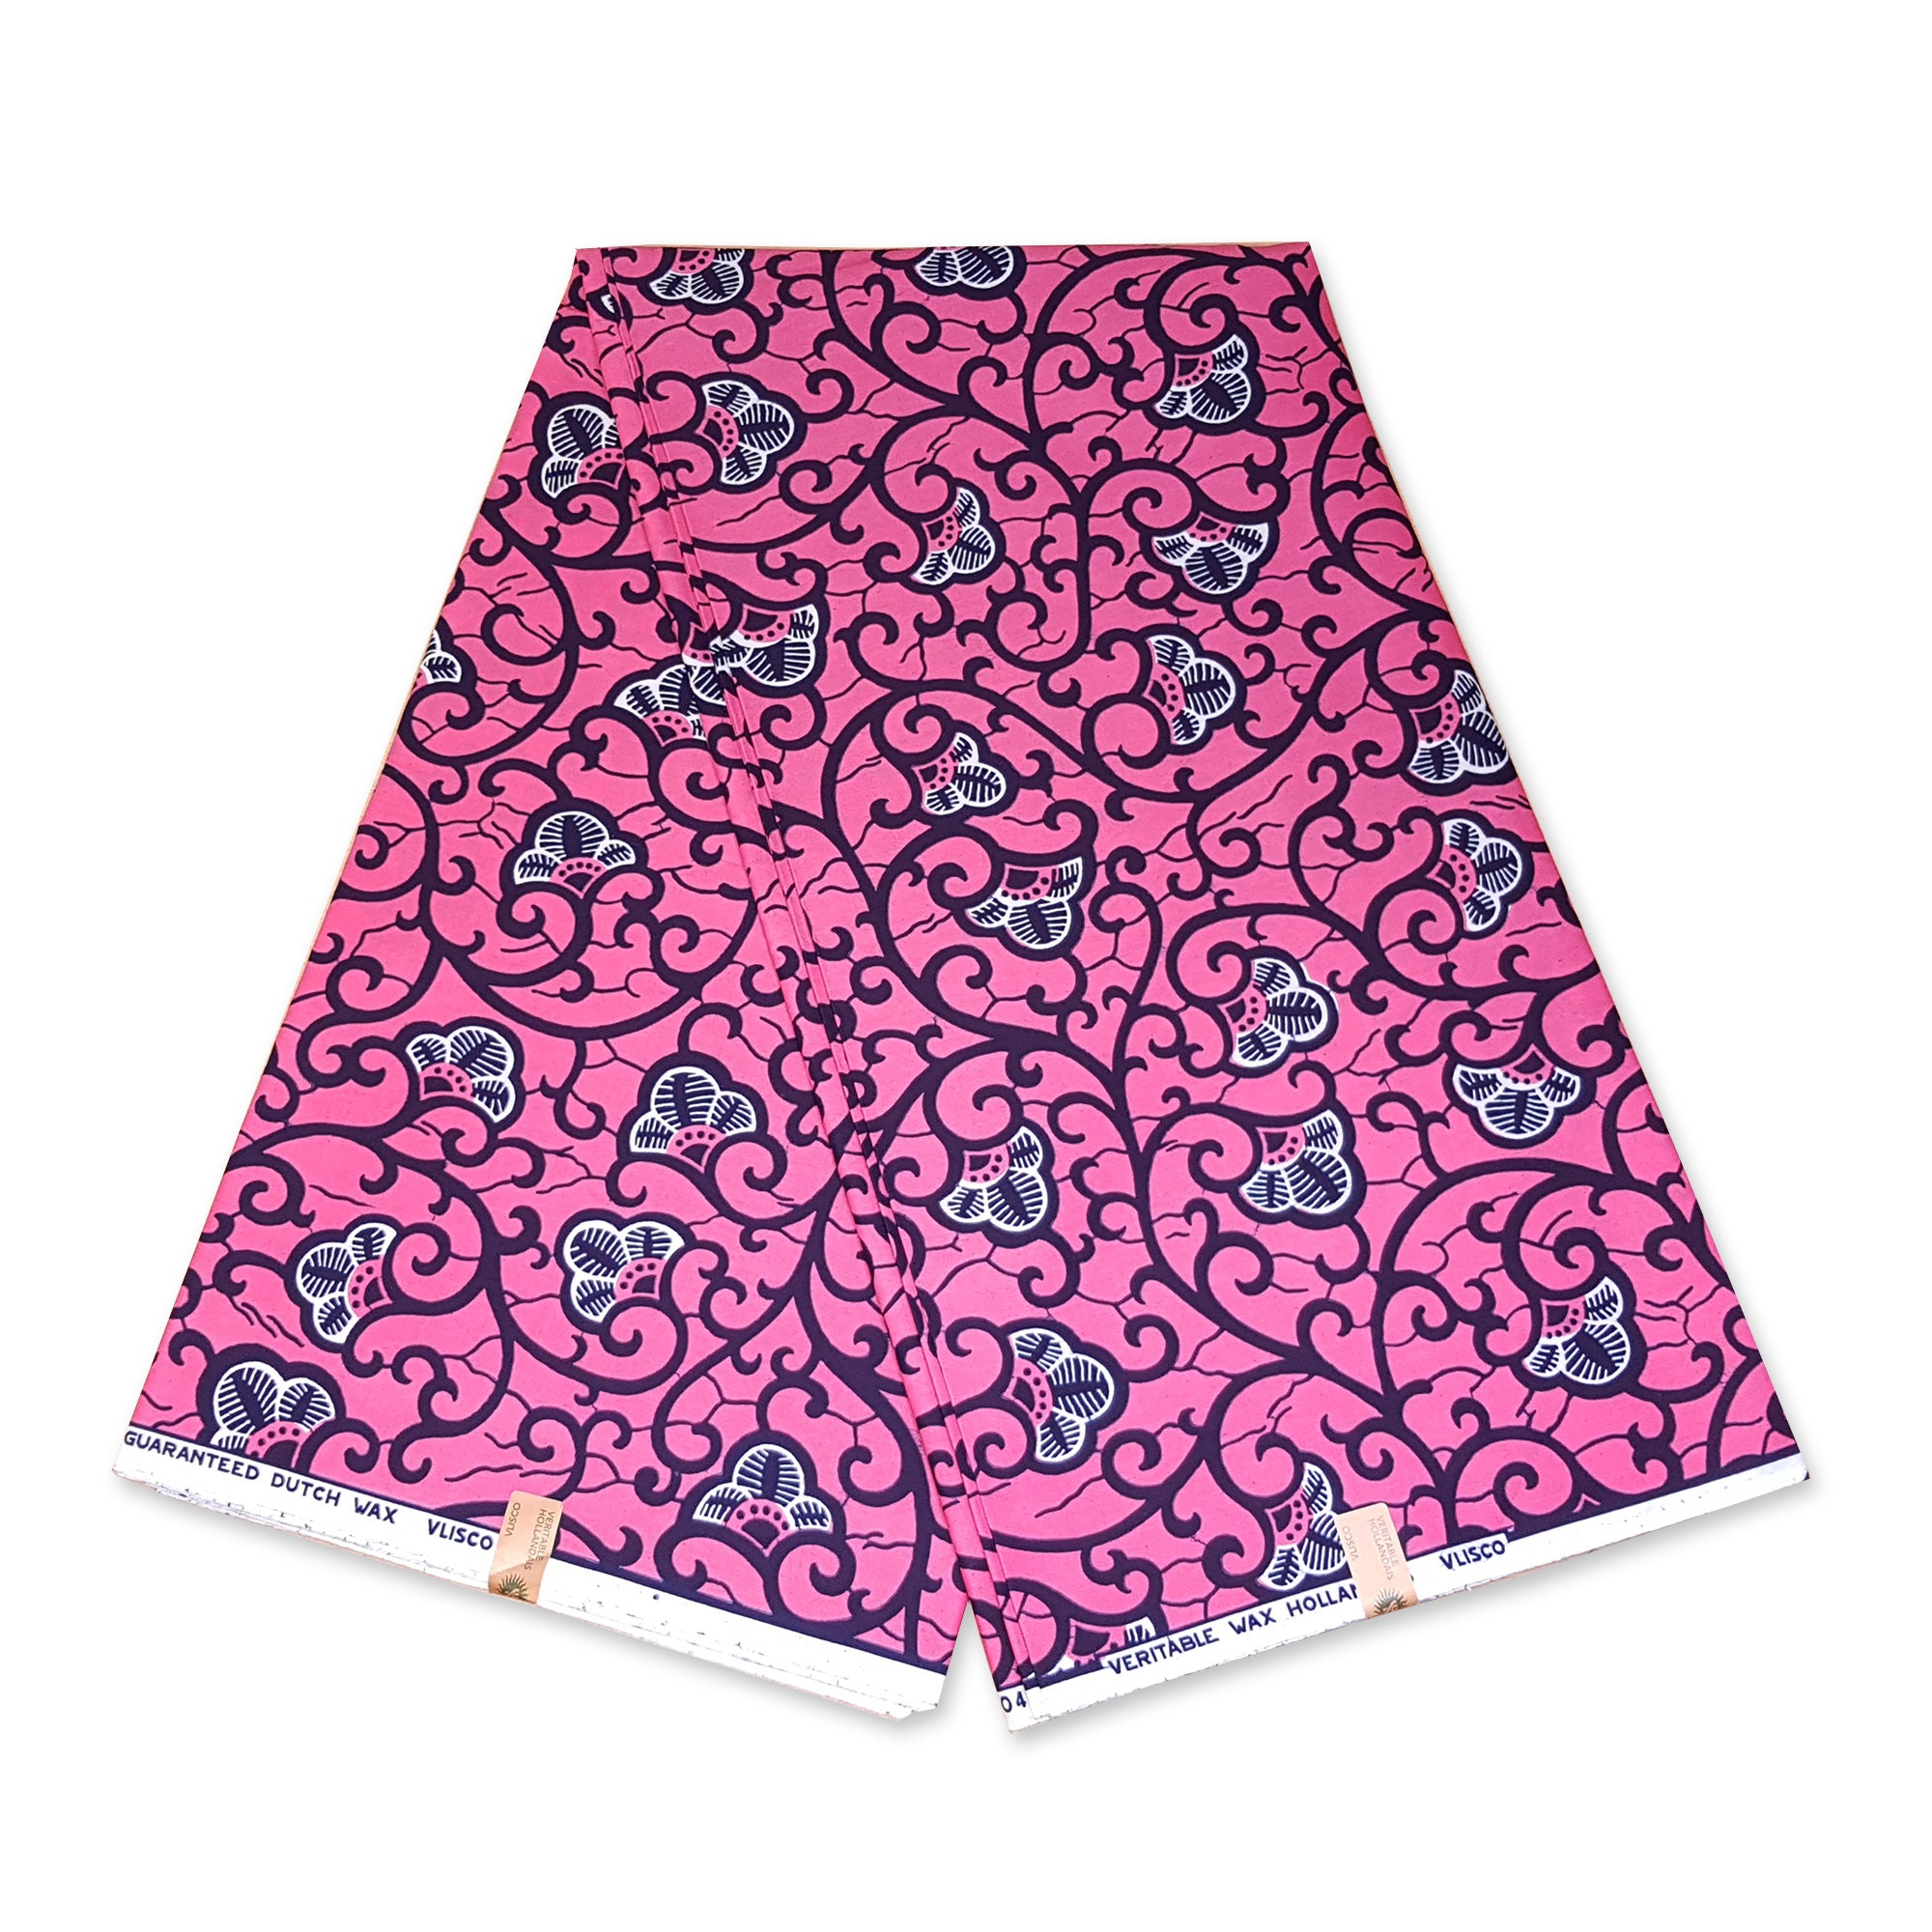 VLISCO Hollandais Wax print fabric - PINK BRANCH